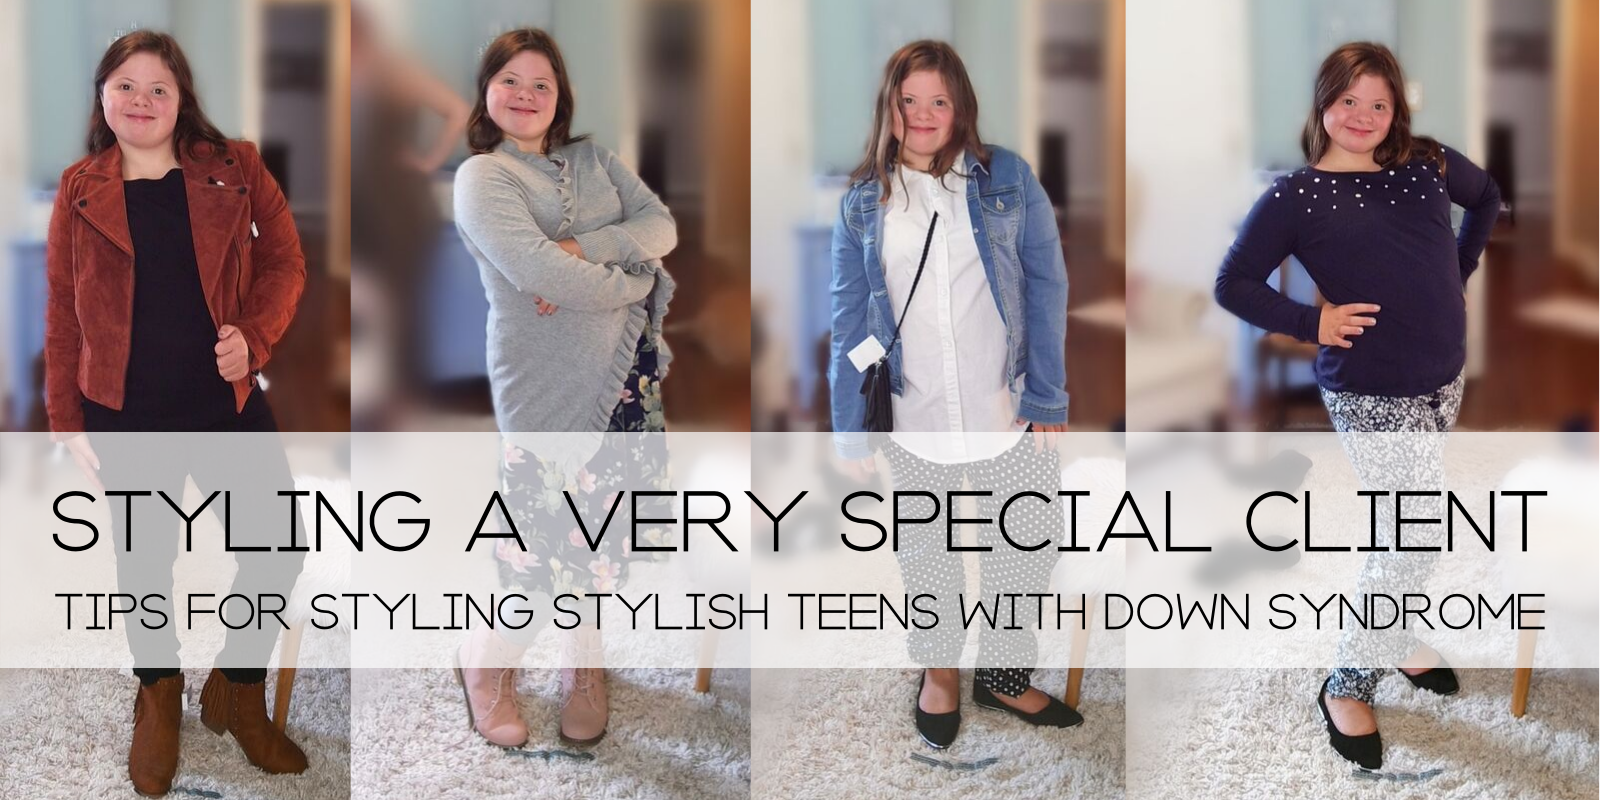 Styling a Very Special Client: Tips for Styling Stylish Teens with Down Syndrome